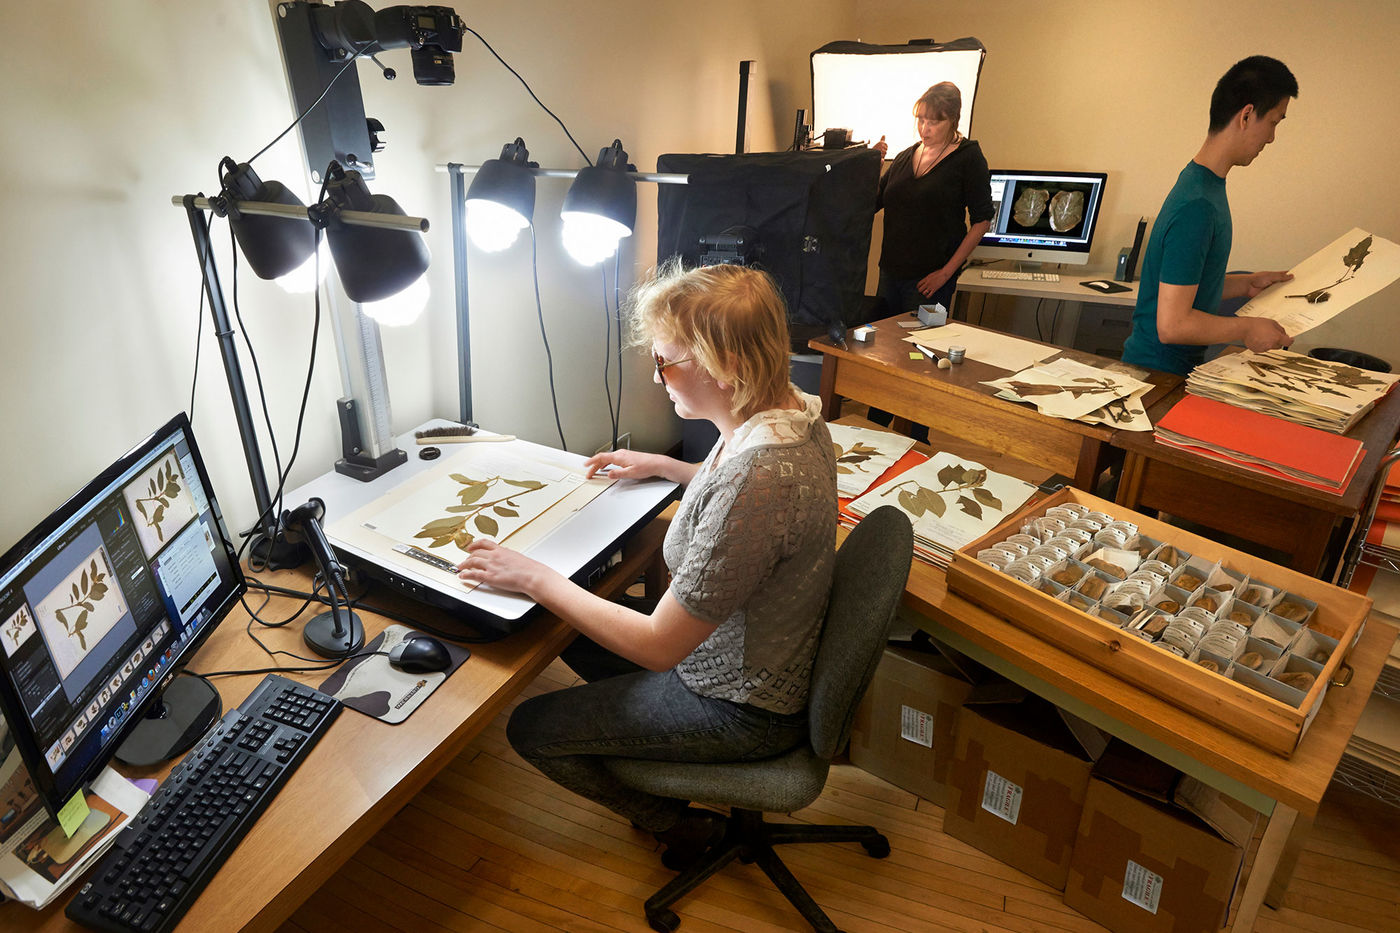 Three people work on digitizing herbarium specimens. The person in the front photographs a sheet with a plant specimen under bright lights, and the image appears on a computer monitor.